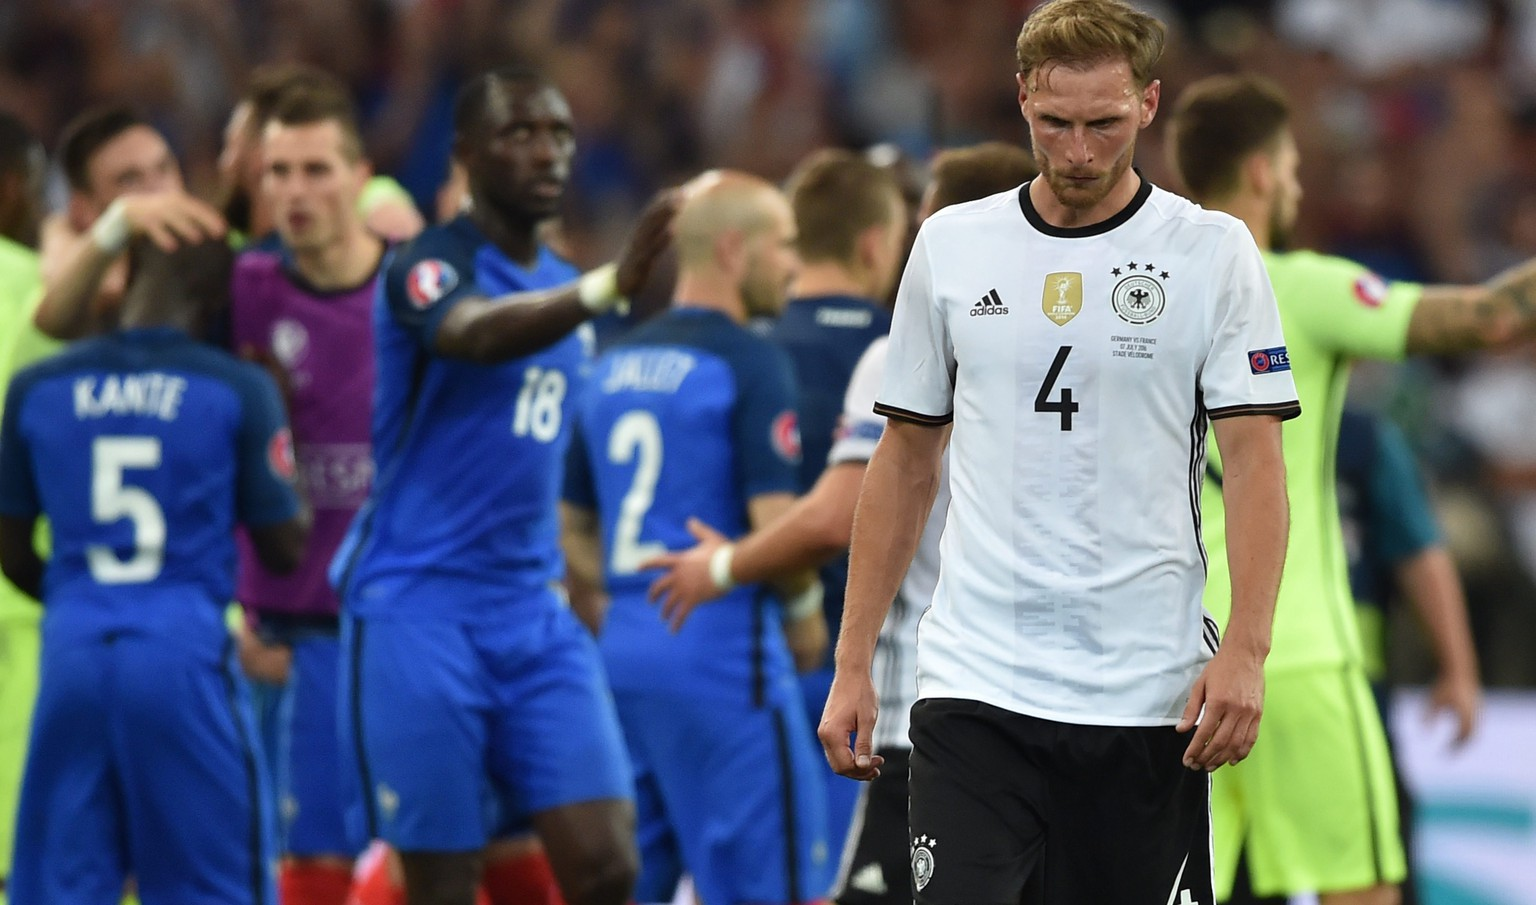 epa05414100 Benedikt Hoewedes (R) of Germany reacts after losing the UEFA EURO 2016 semi final match between Germany and France at Stade Velodrome in Marseille, France, 07 July 2016.